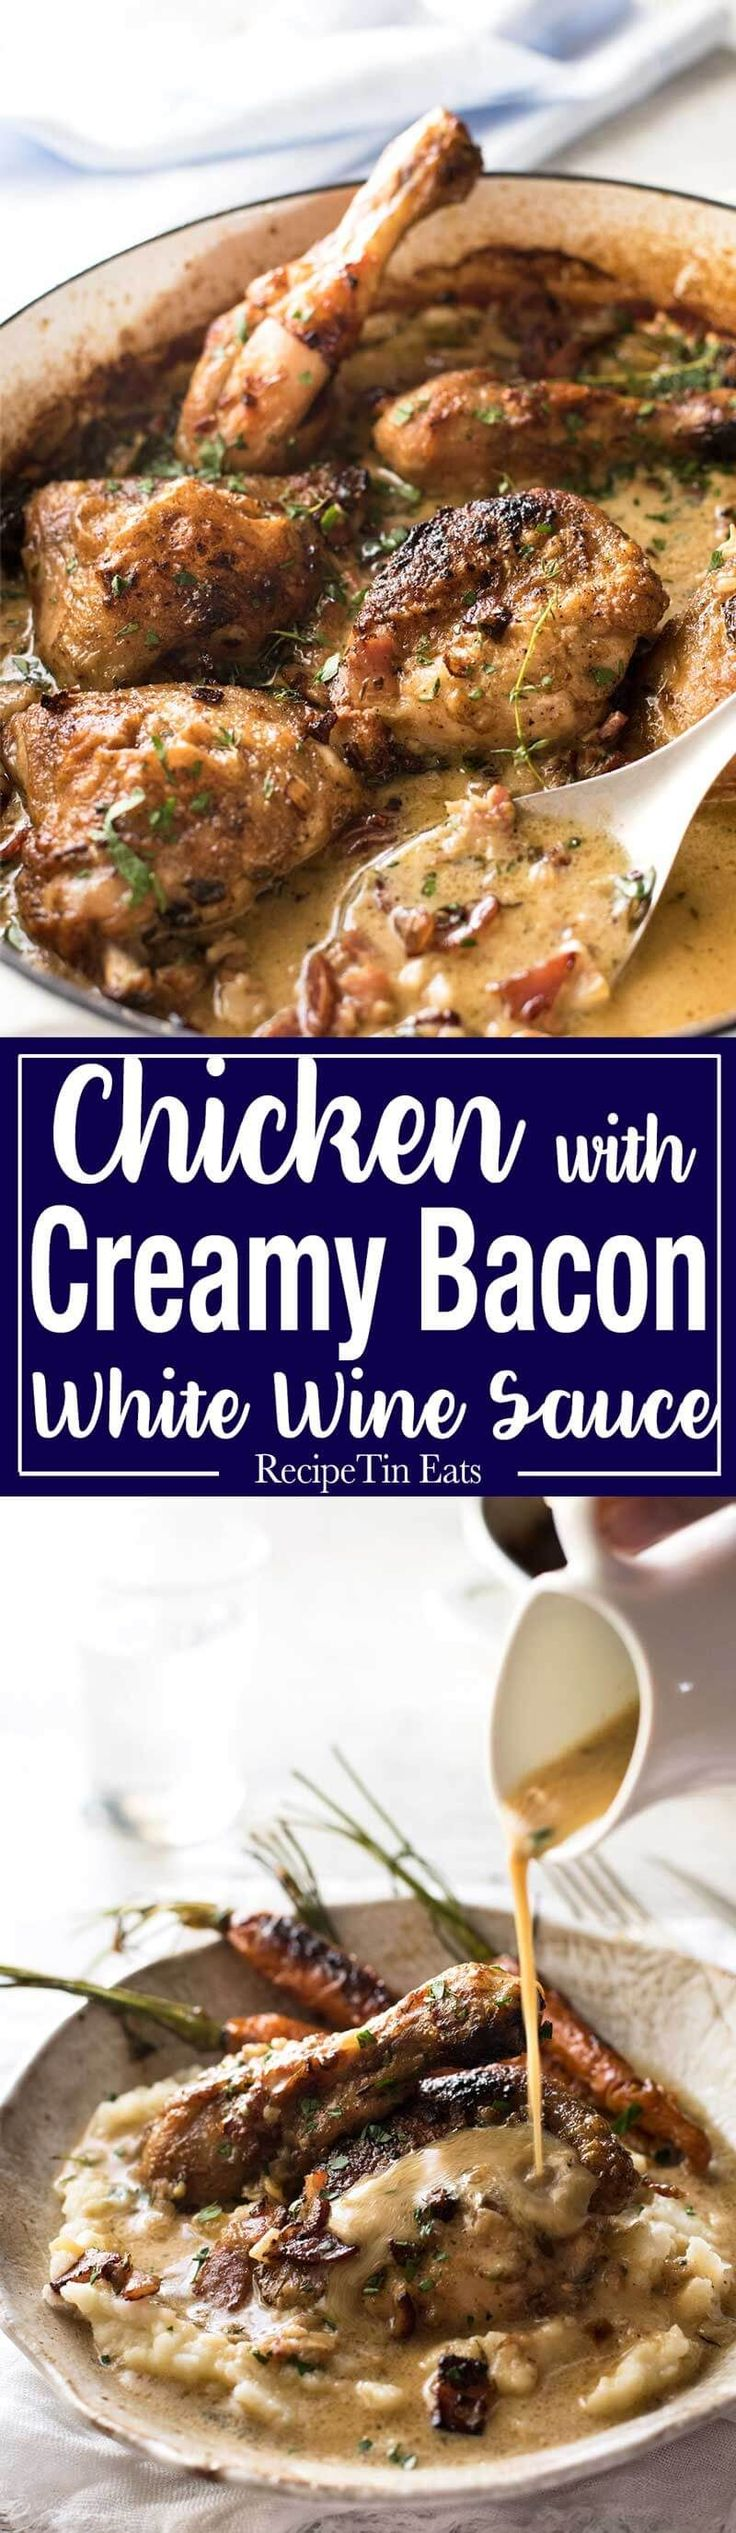 Chicken with Creamy White Wine Sauce and Bacon - So easy to prepare, then just let it braise in the oven until the chicken is tender. The sauce is incredible! www.recipetineats.com